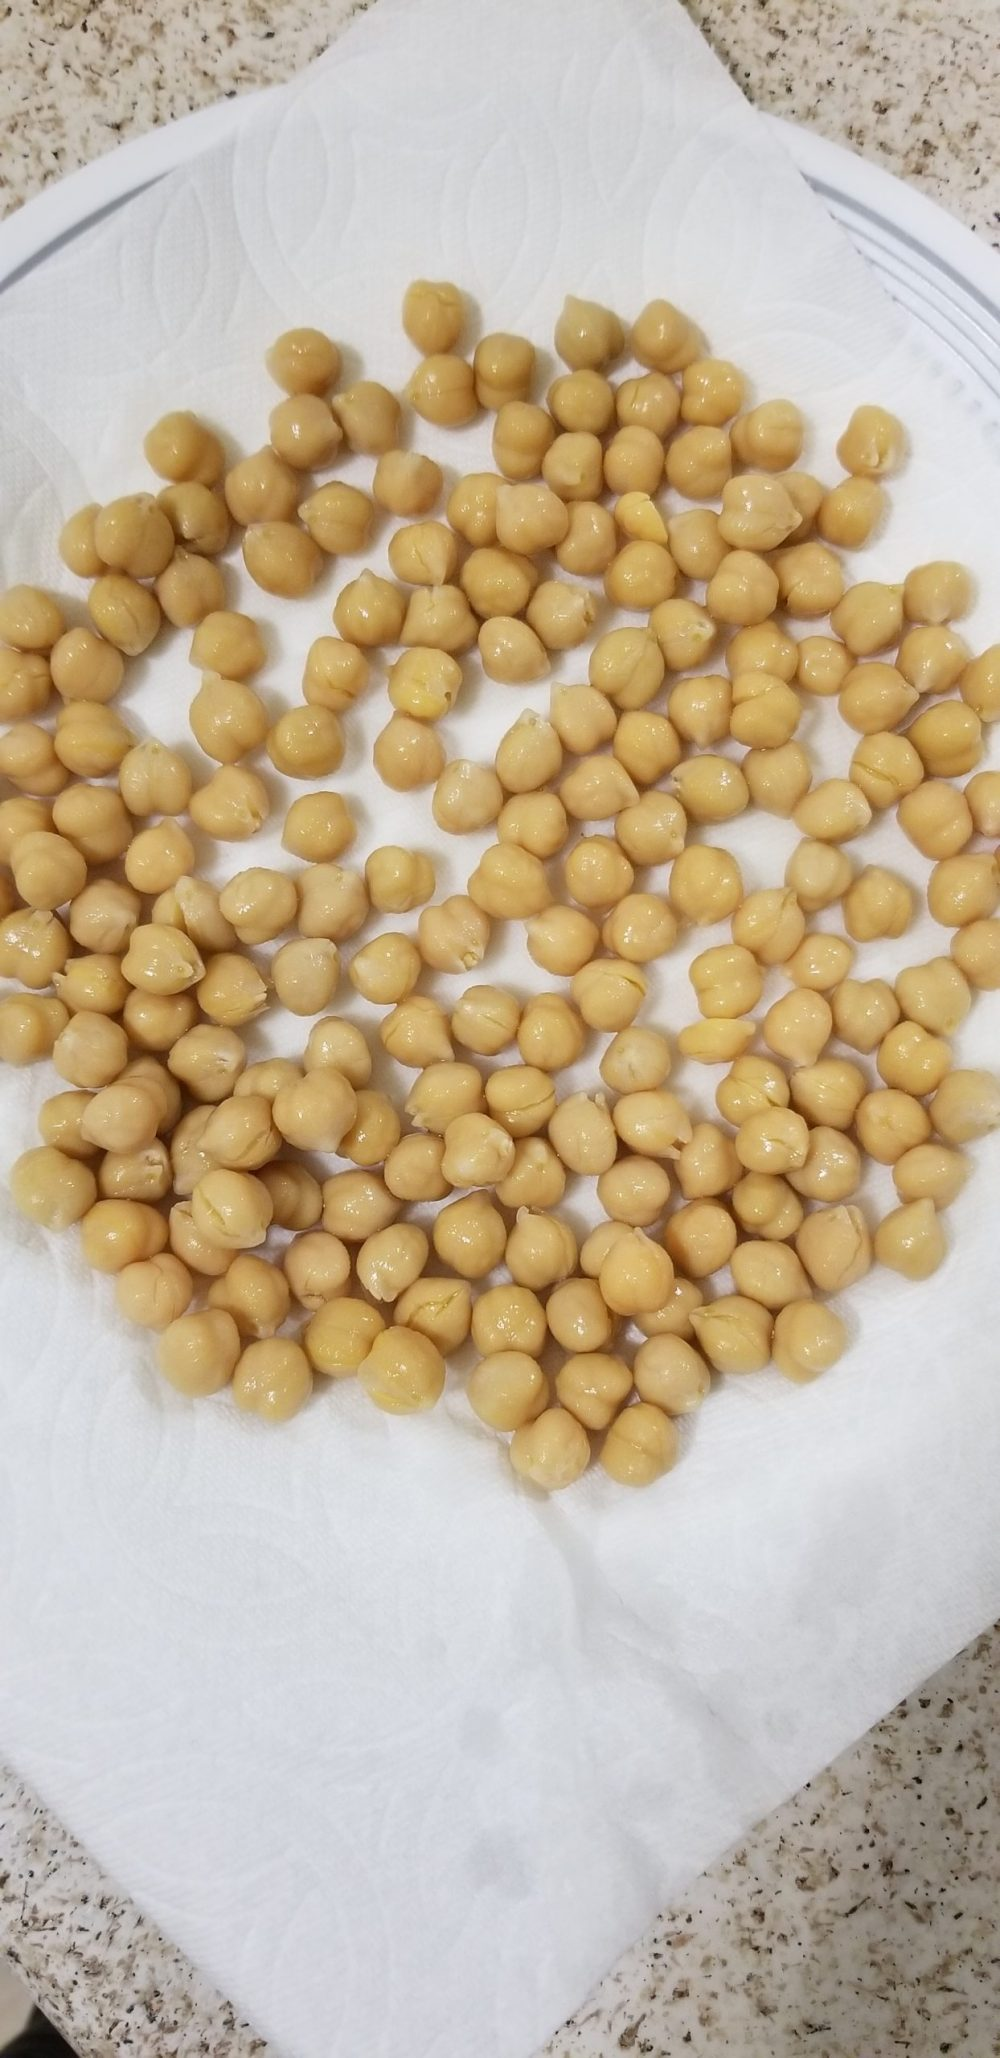 Chickpeas on a plate lined with paper towel